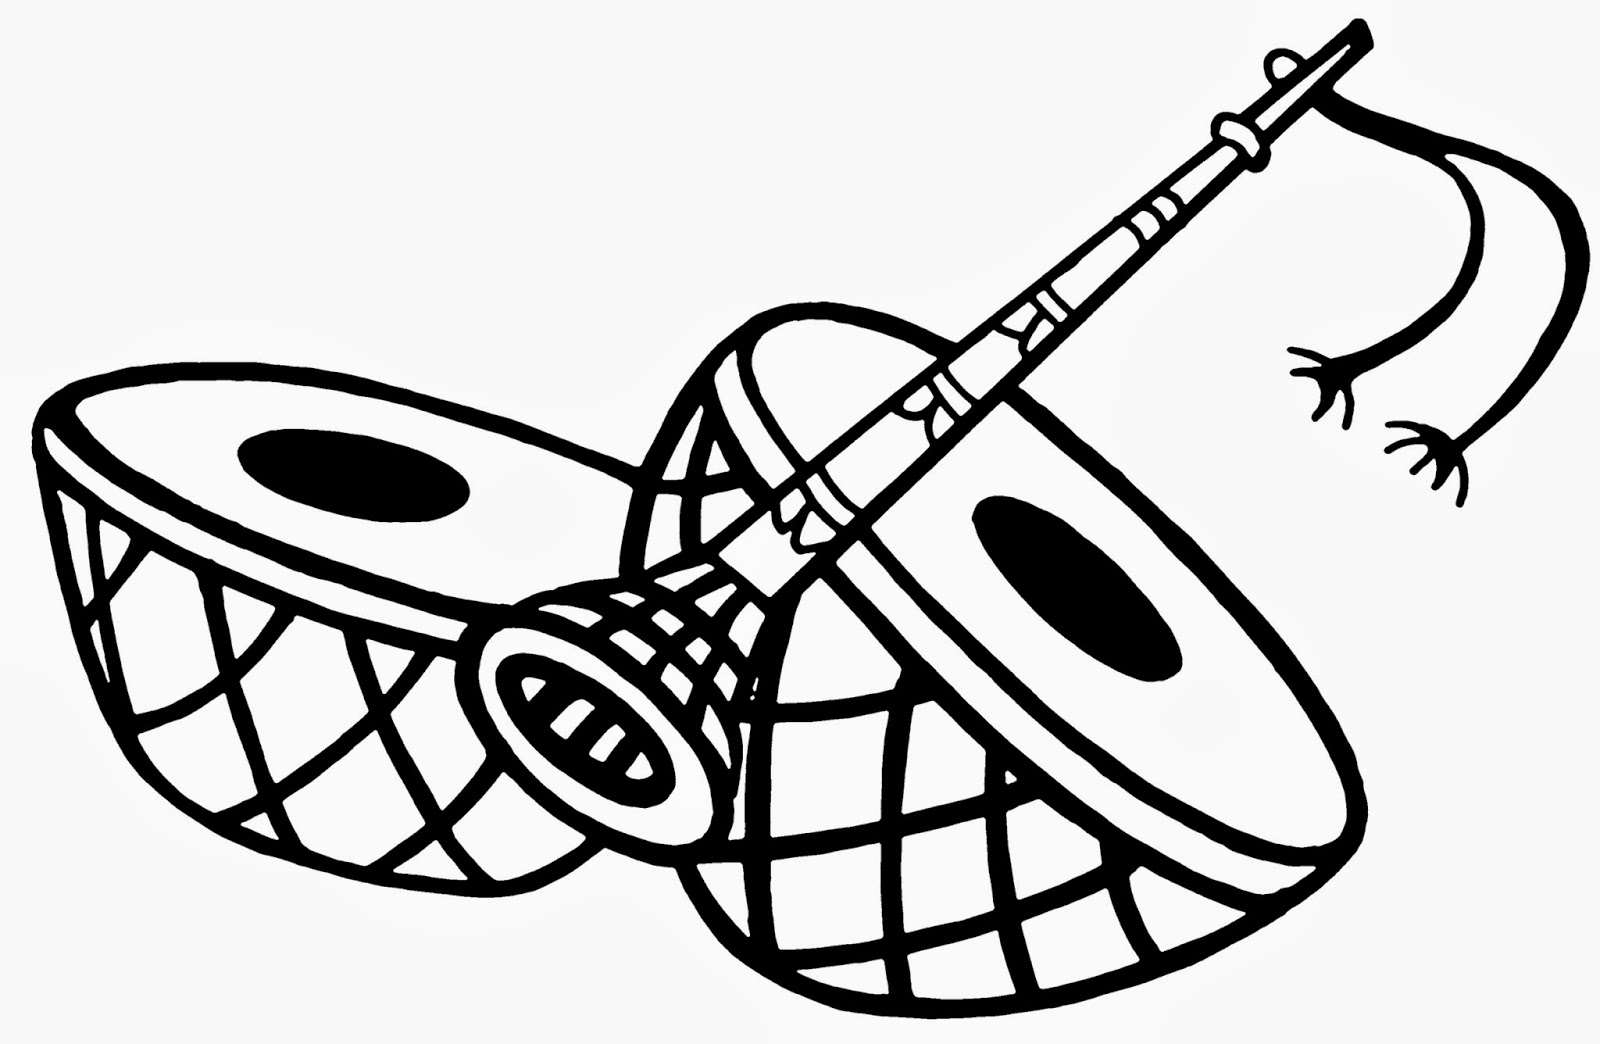 Dhol clipart vector black and white download Free Dhol Cliparts, Download Free Clip Art, Free Clip Art on Clipart ... vector black and white download